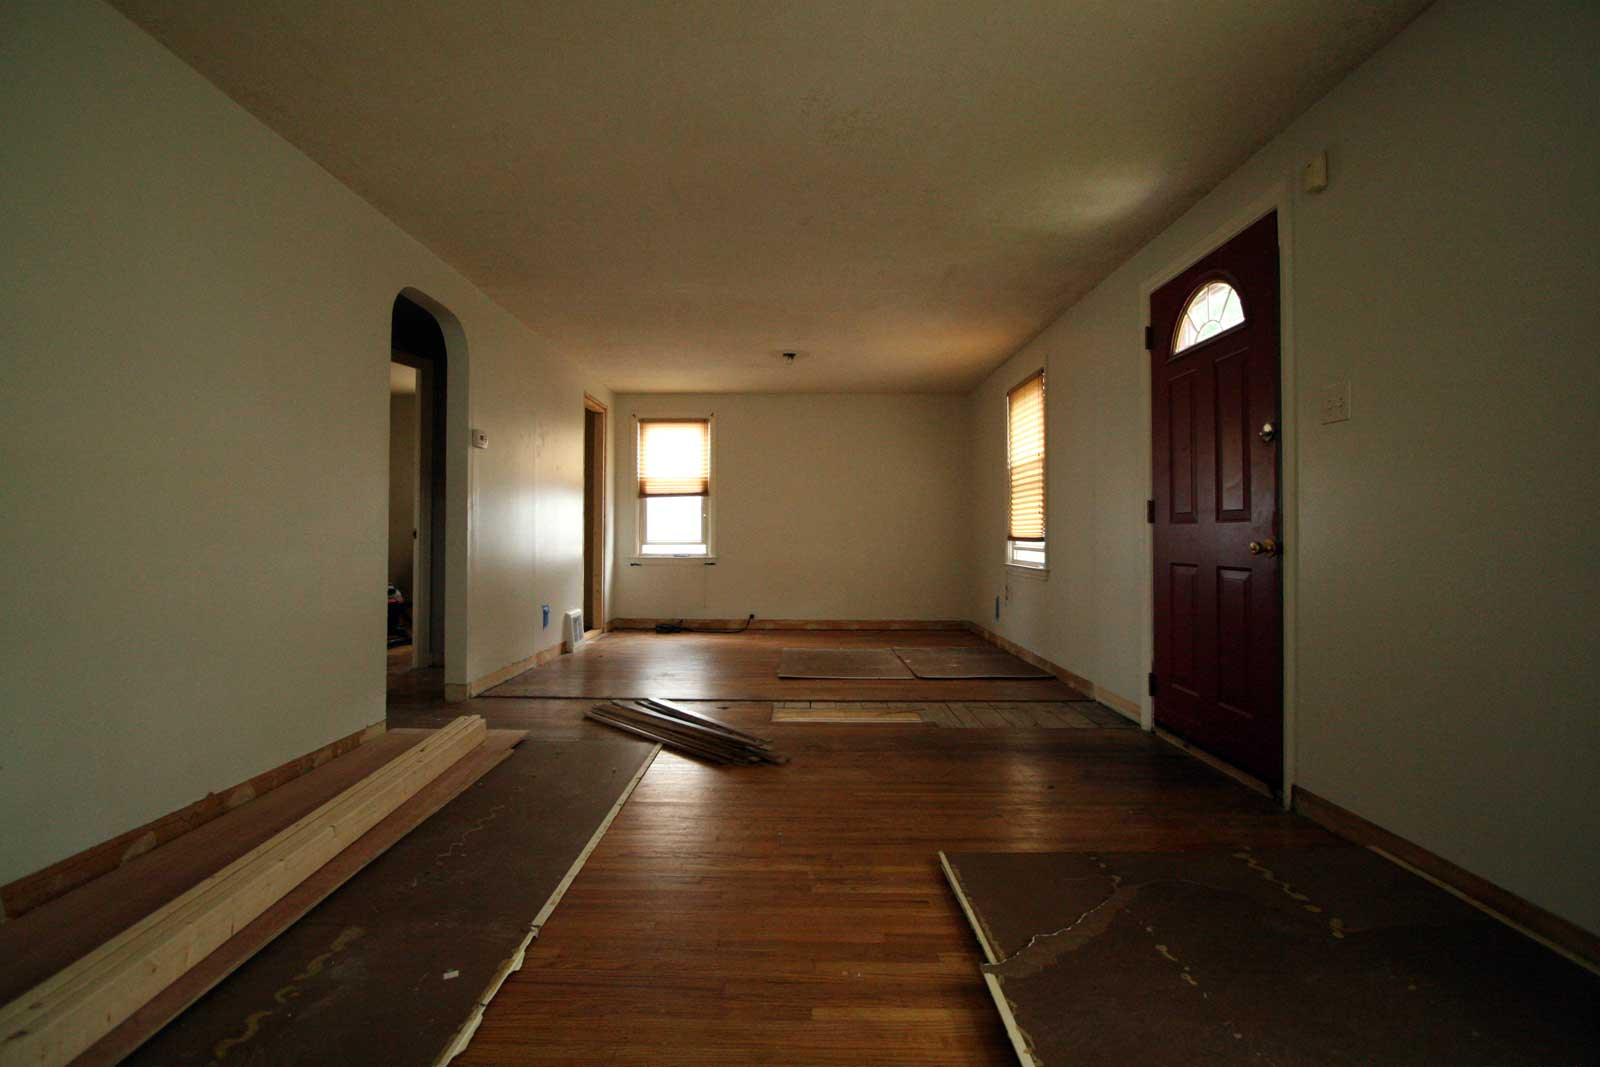 Replacing some of the wood floors